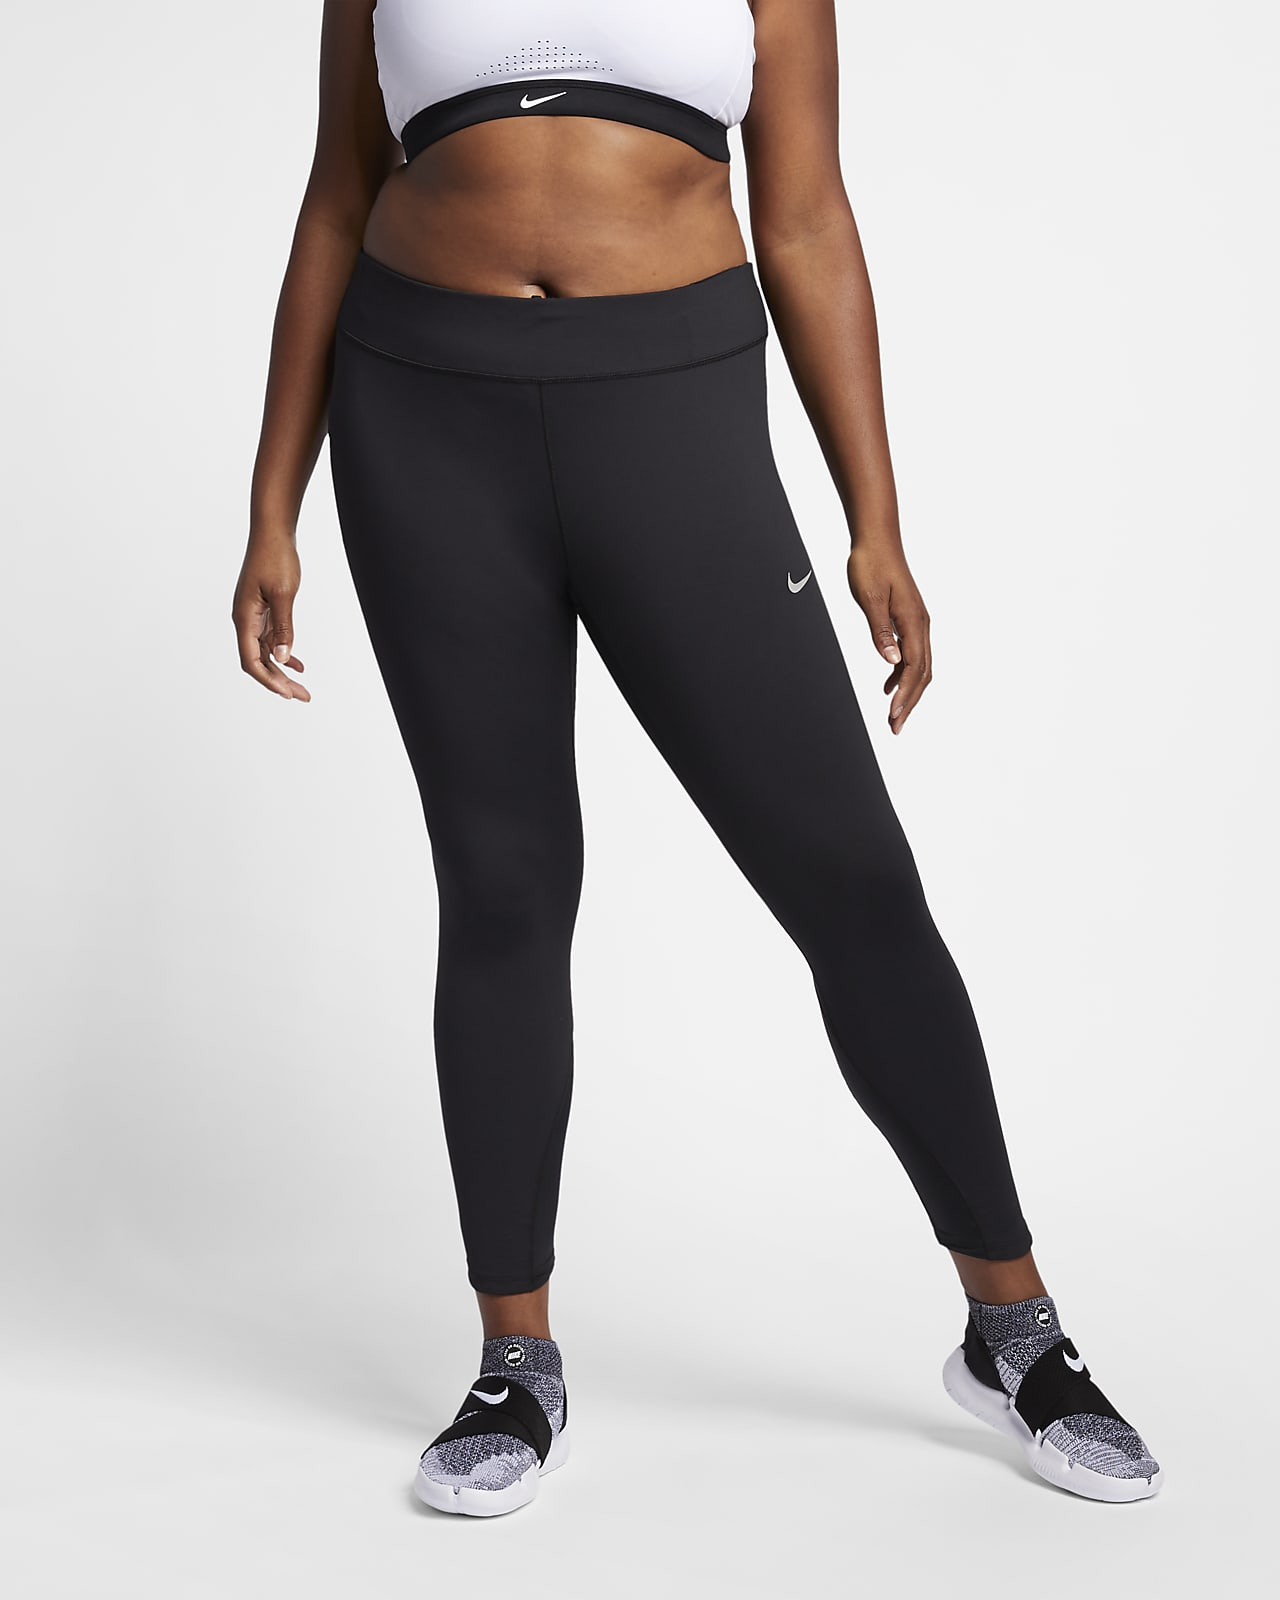 Nike Epic Lux Women's Mid-Rise Running Tights (Plus Size)